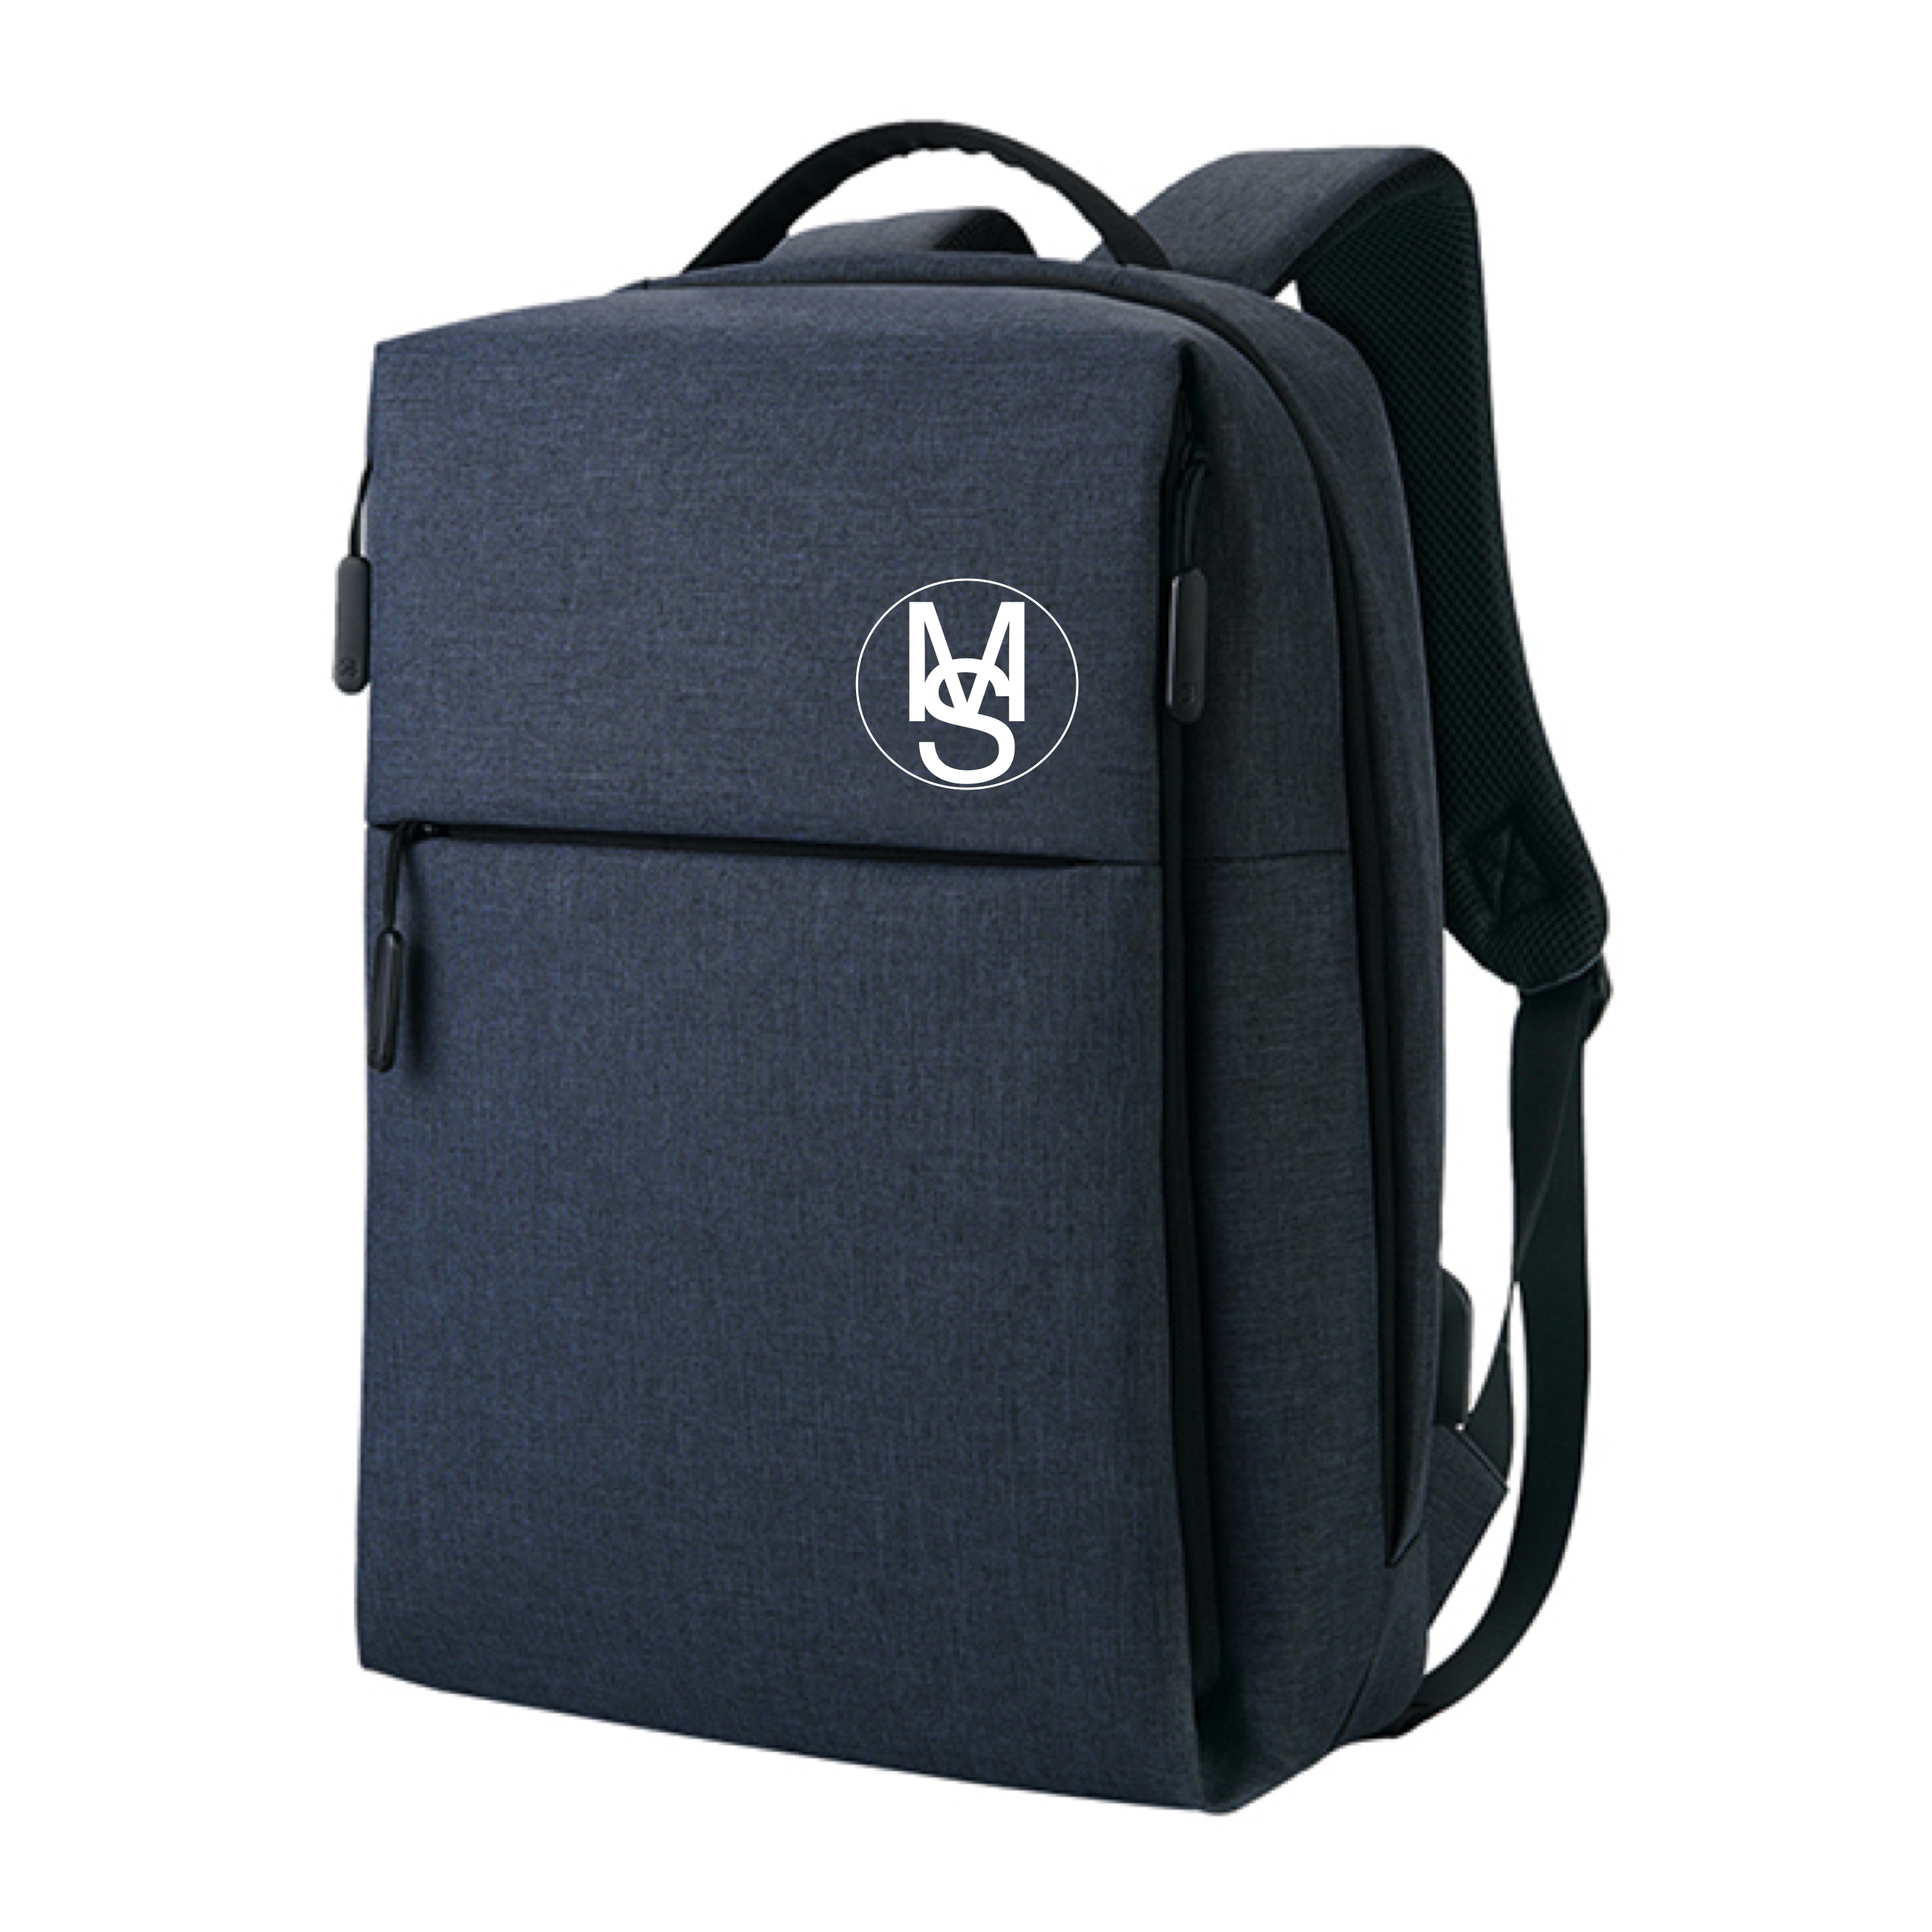 Multifunctional Anti-Theft Backpack - Blue Image